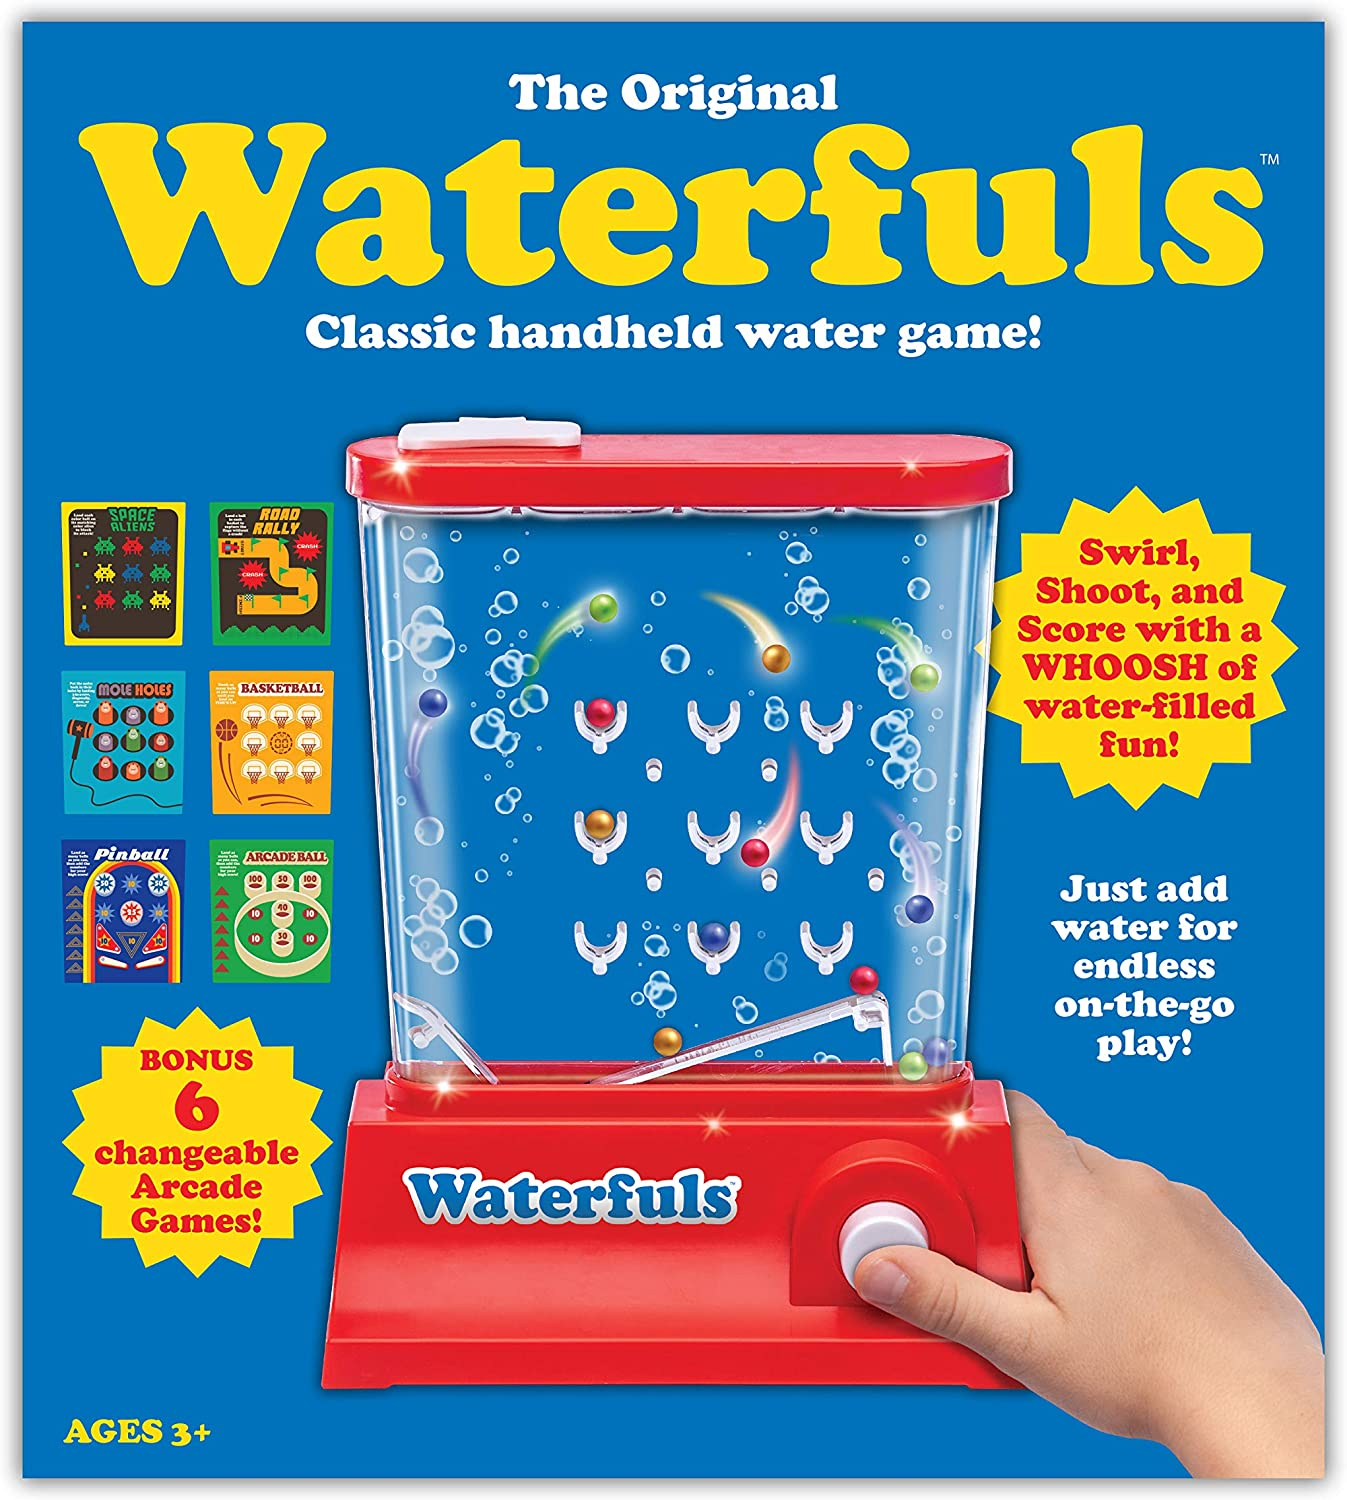 Waterfuls - The Original Handheld Game -Retro Classic